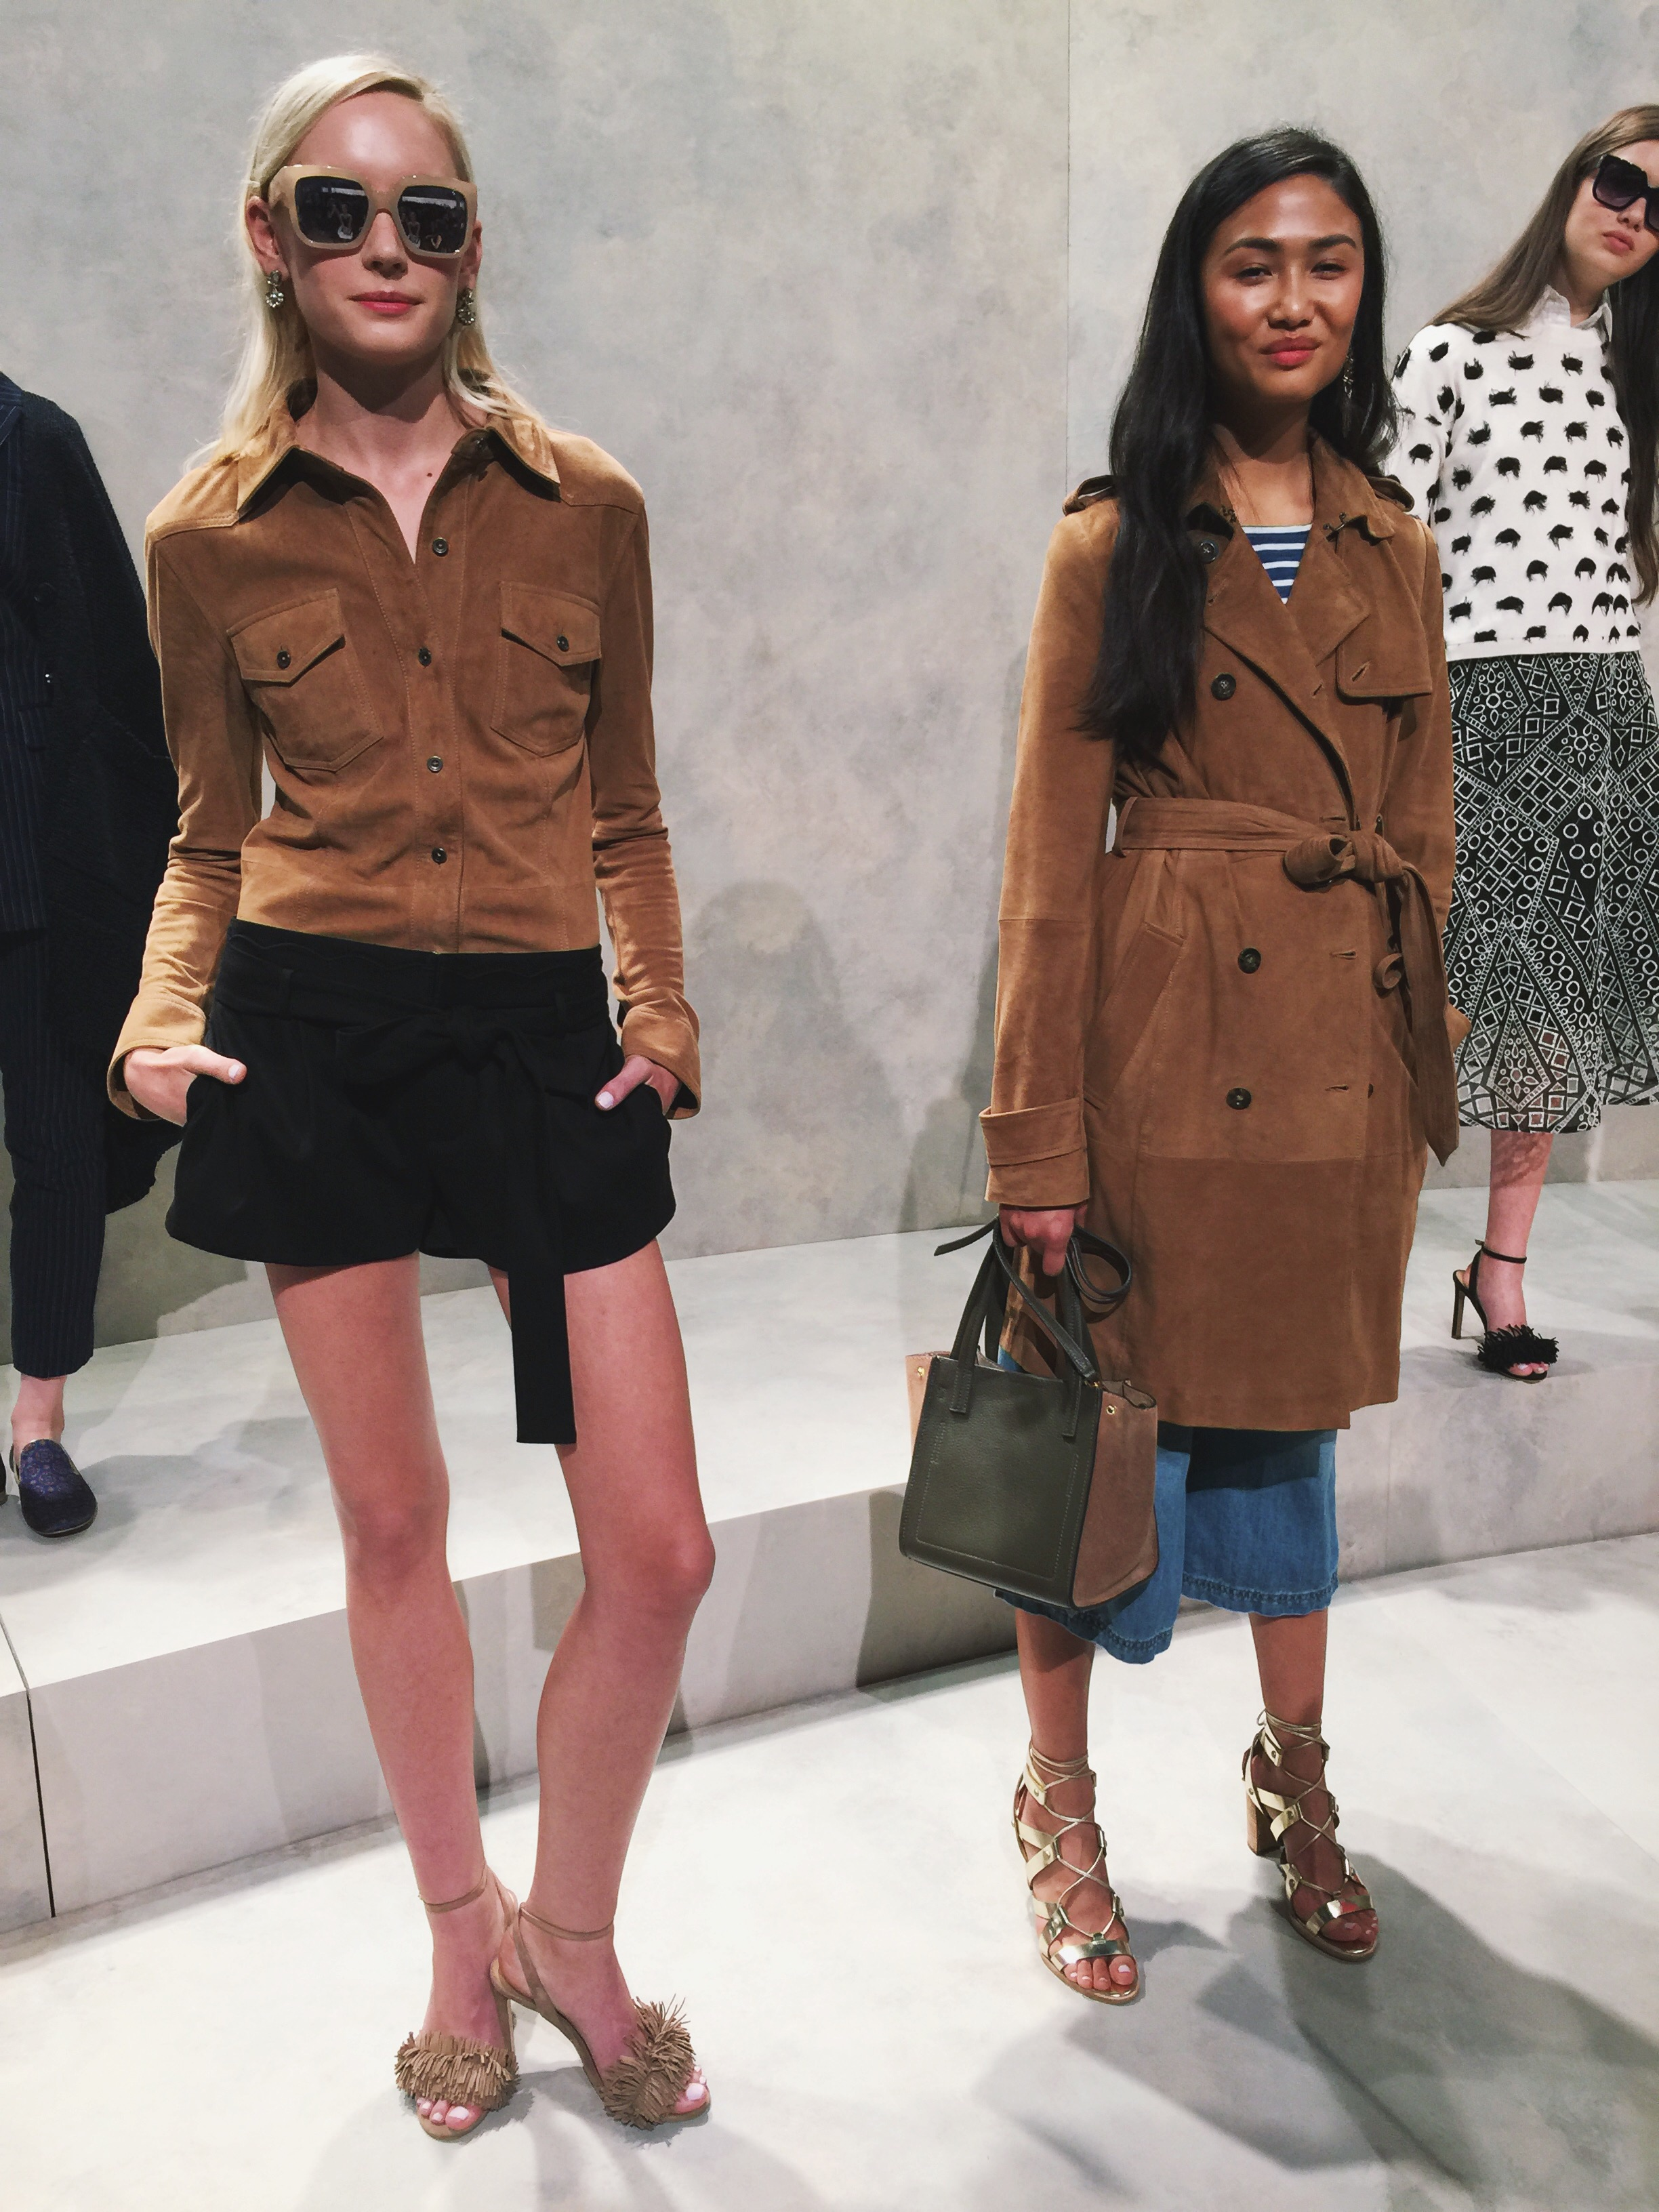 These earth tones were everywhere throughout the week. And this rich camel color in suede took the cake.